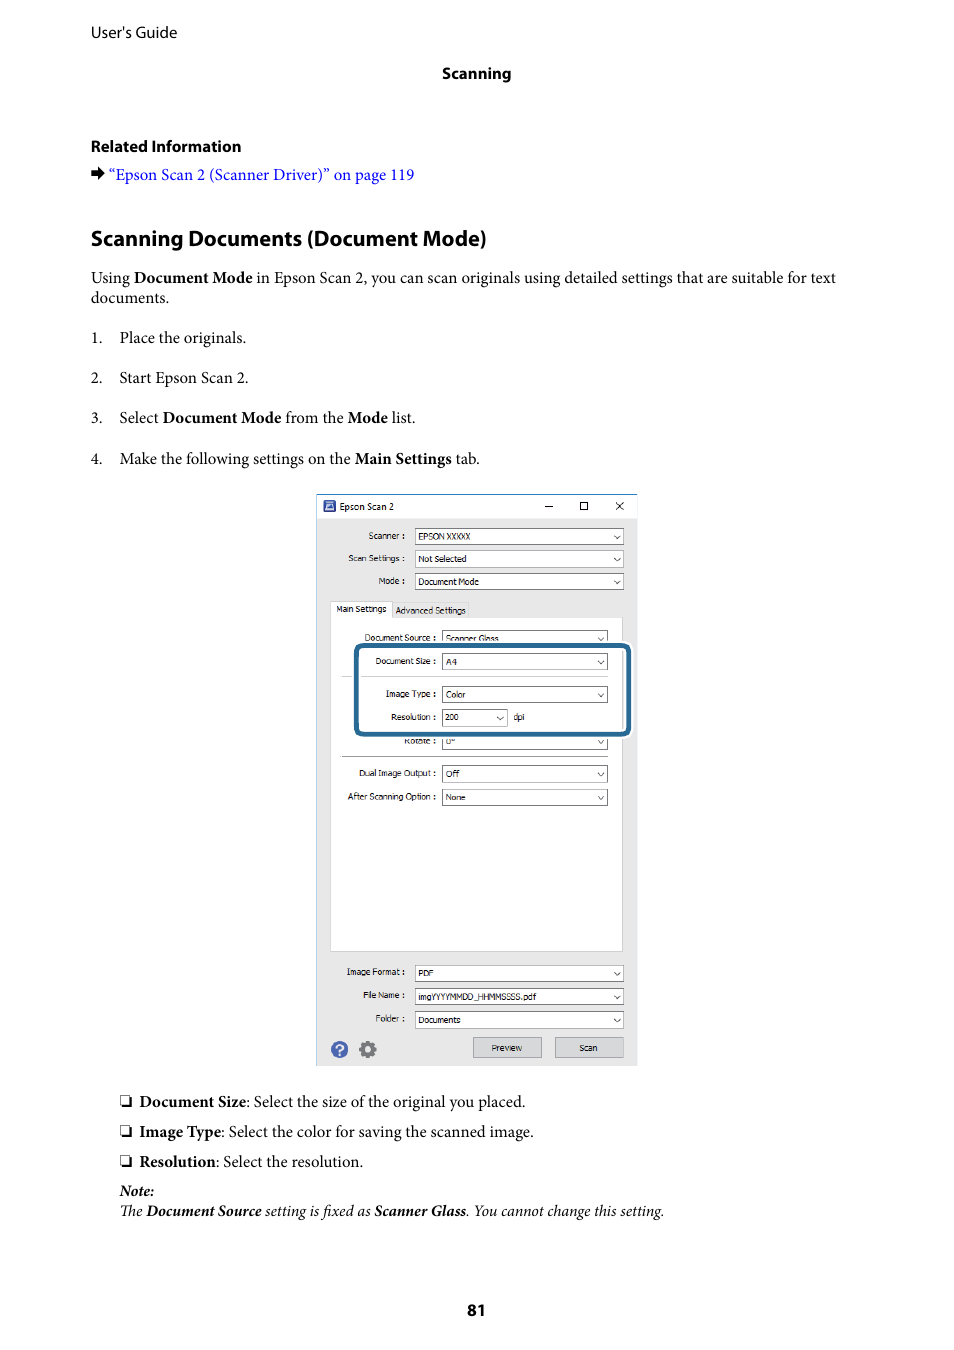 Scanning documents (document mode) | Epson Expression Home XP-342